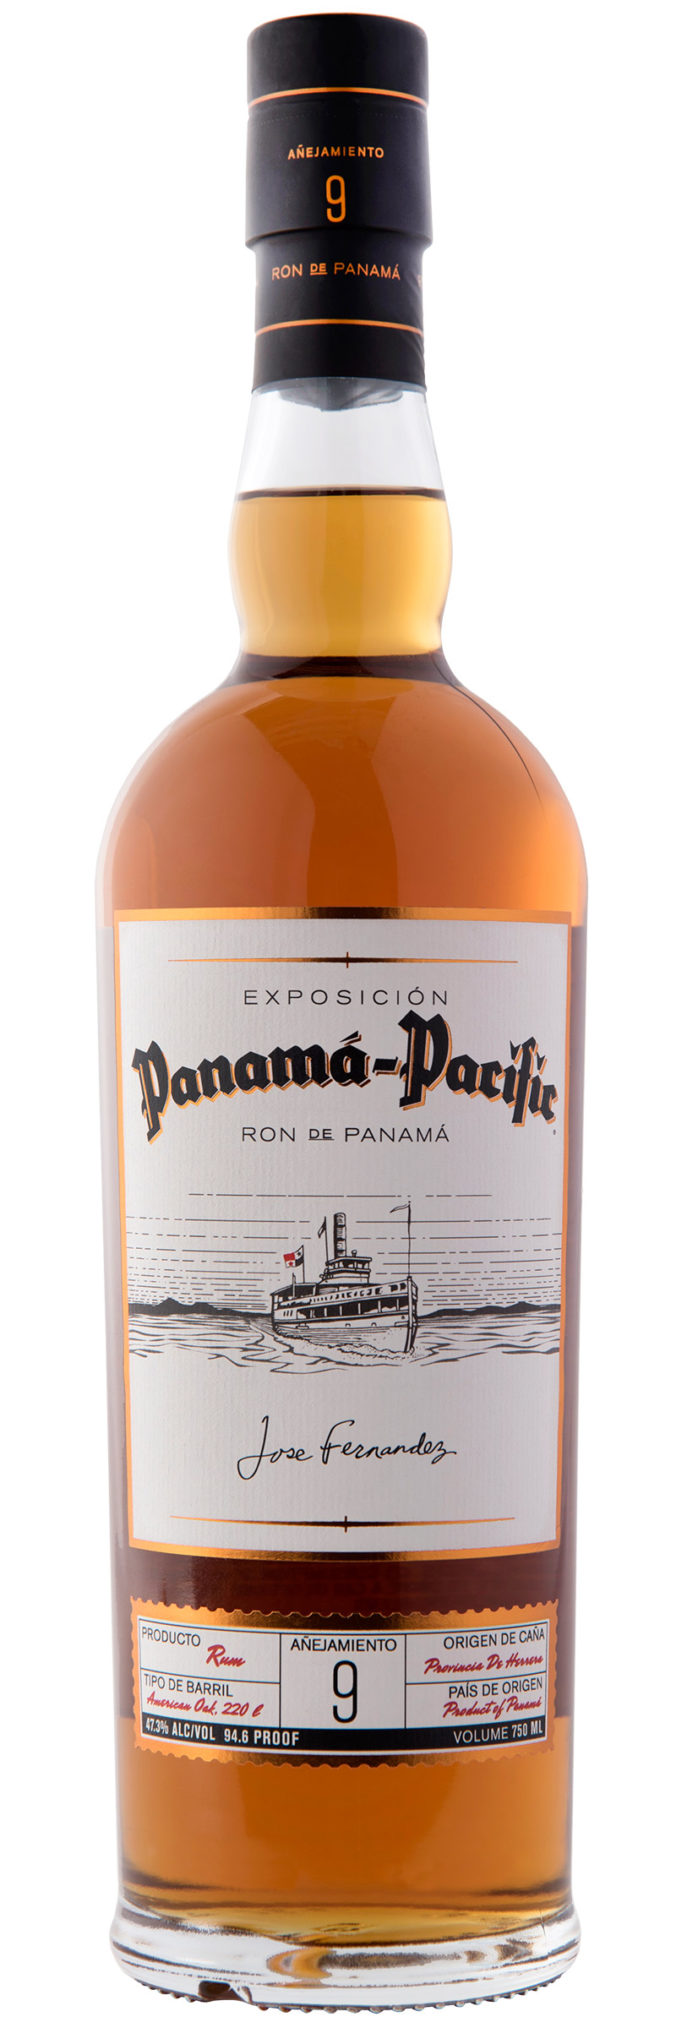 Panama-Pacific 9 year old aged rum from Panama celebrates the Pacific Exposition of San Francisco in 1915, the Panama Canal and the long history of Haas Brothers in California.